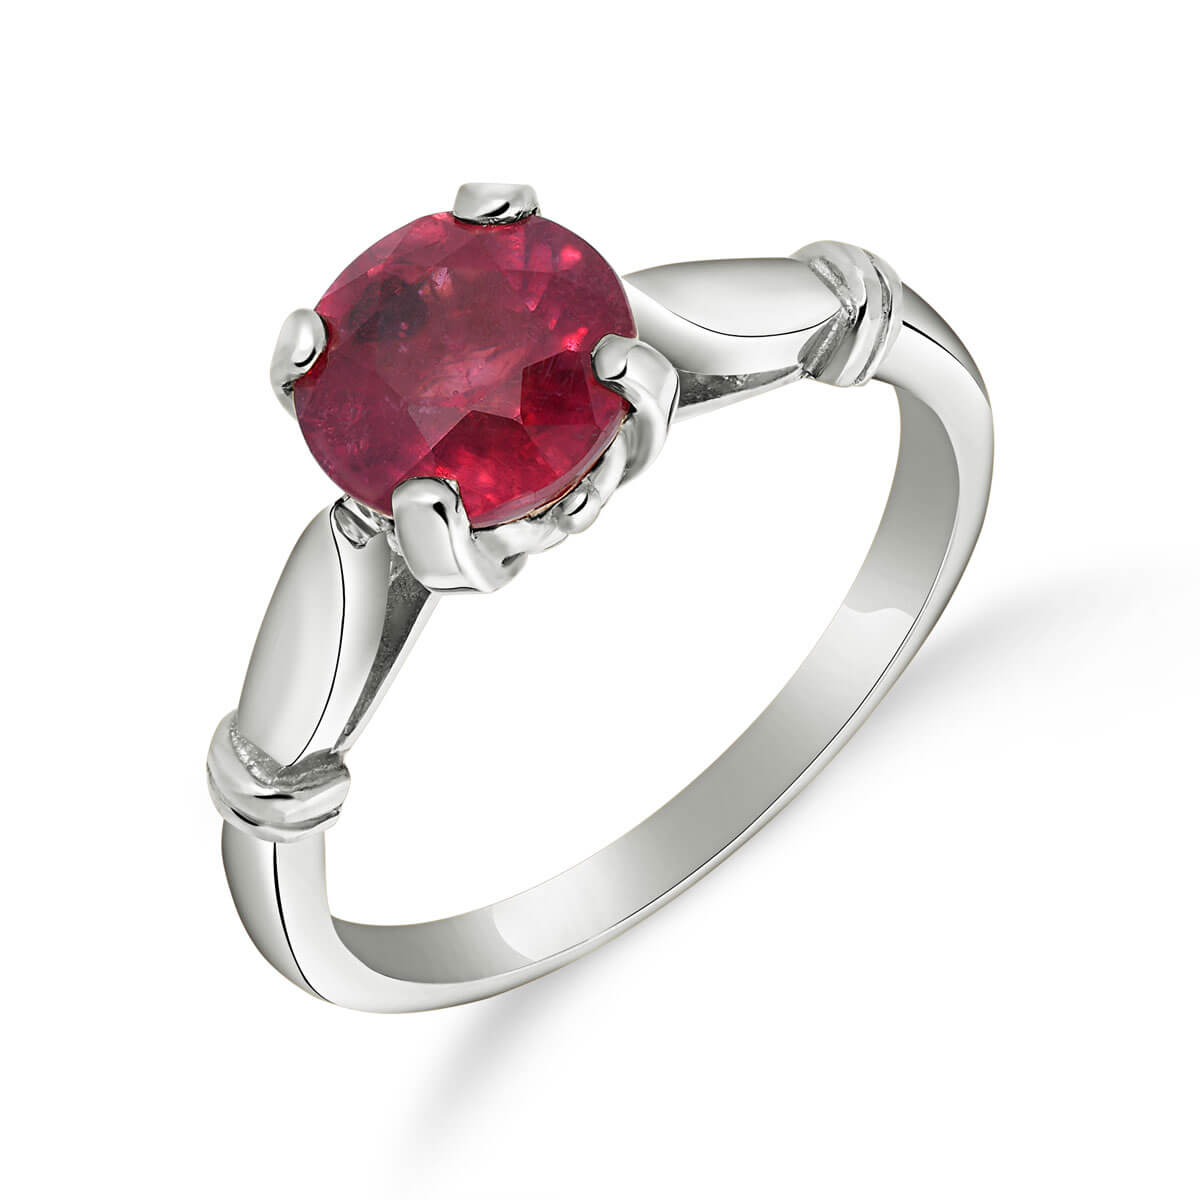 Ruby Solitaire Ring 2 ct in 18ct White Gold